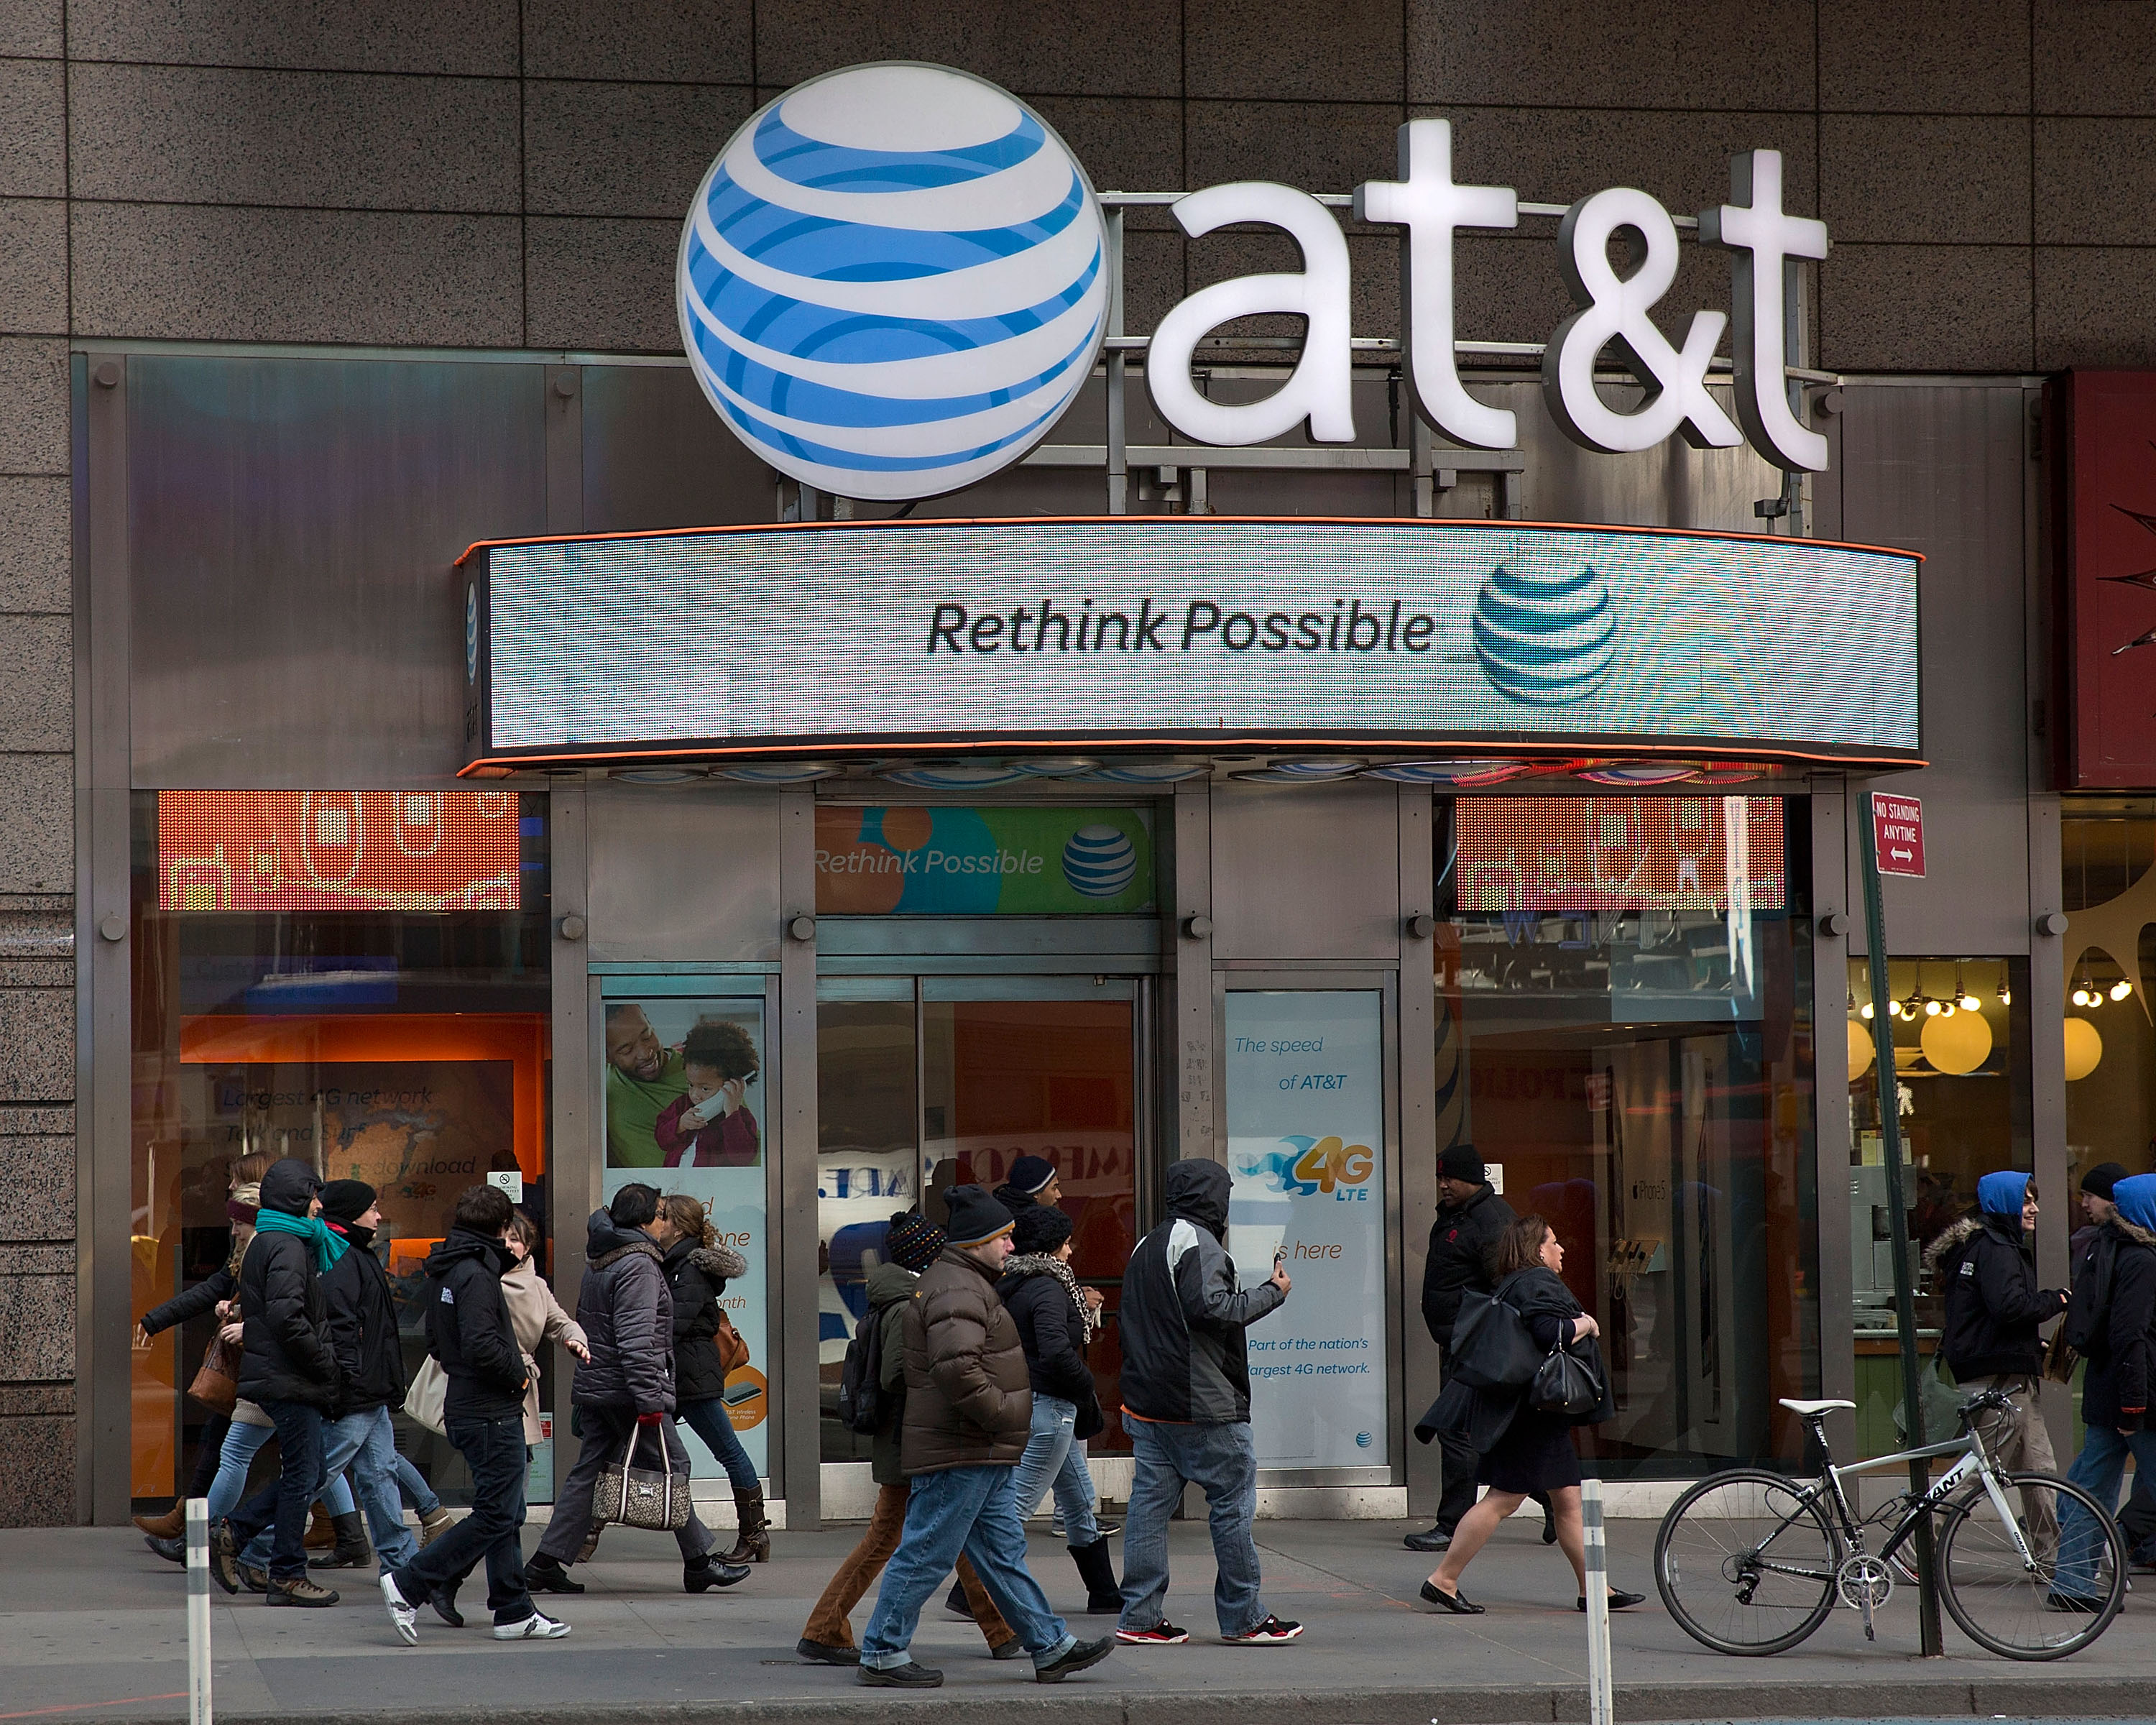 A general view of the exterior of the AT&T store in Times Sqaure on February 21, 2013 in New York City.